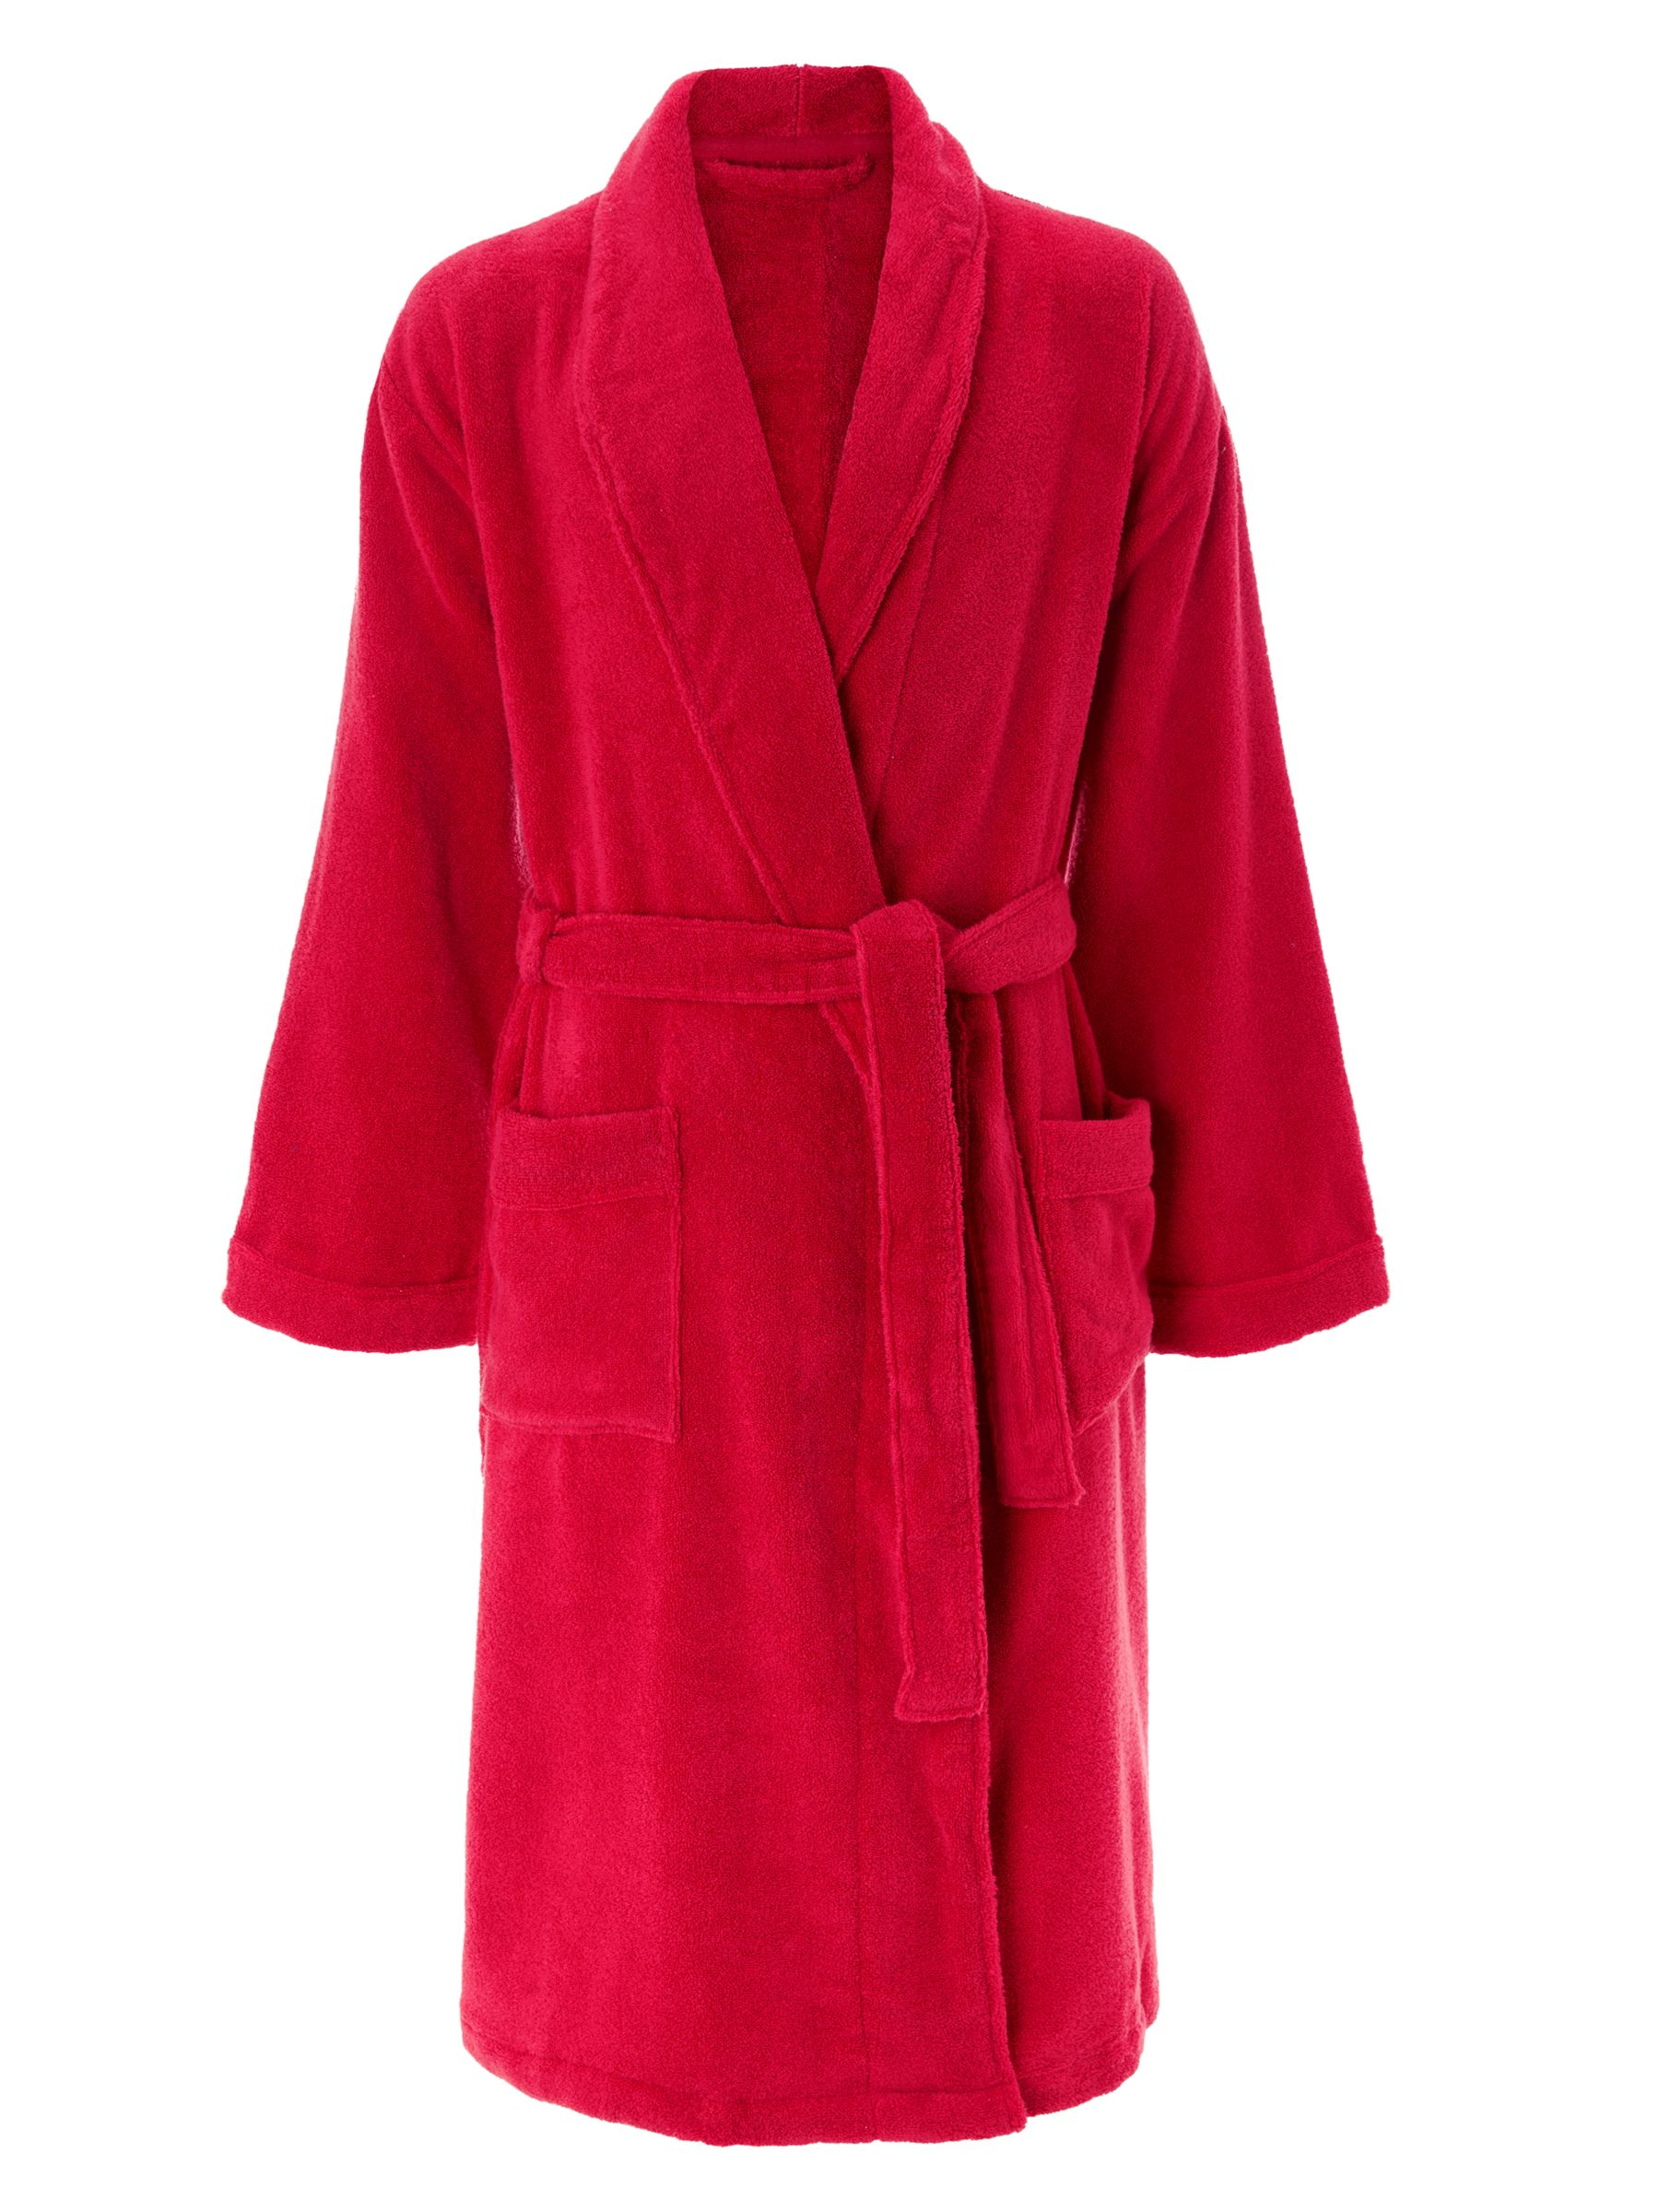 c07e869971 John Lewis   Partners Super Soft and Cosy Unisex Cotton Bath Robe at John  Lewis   Partners